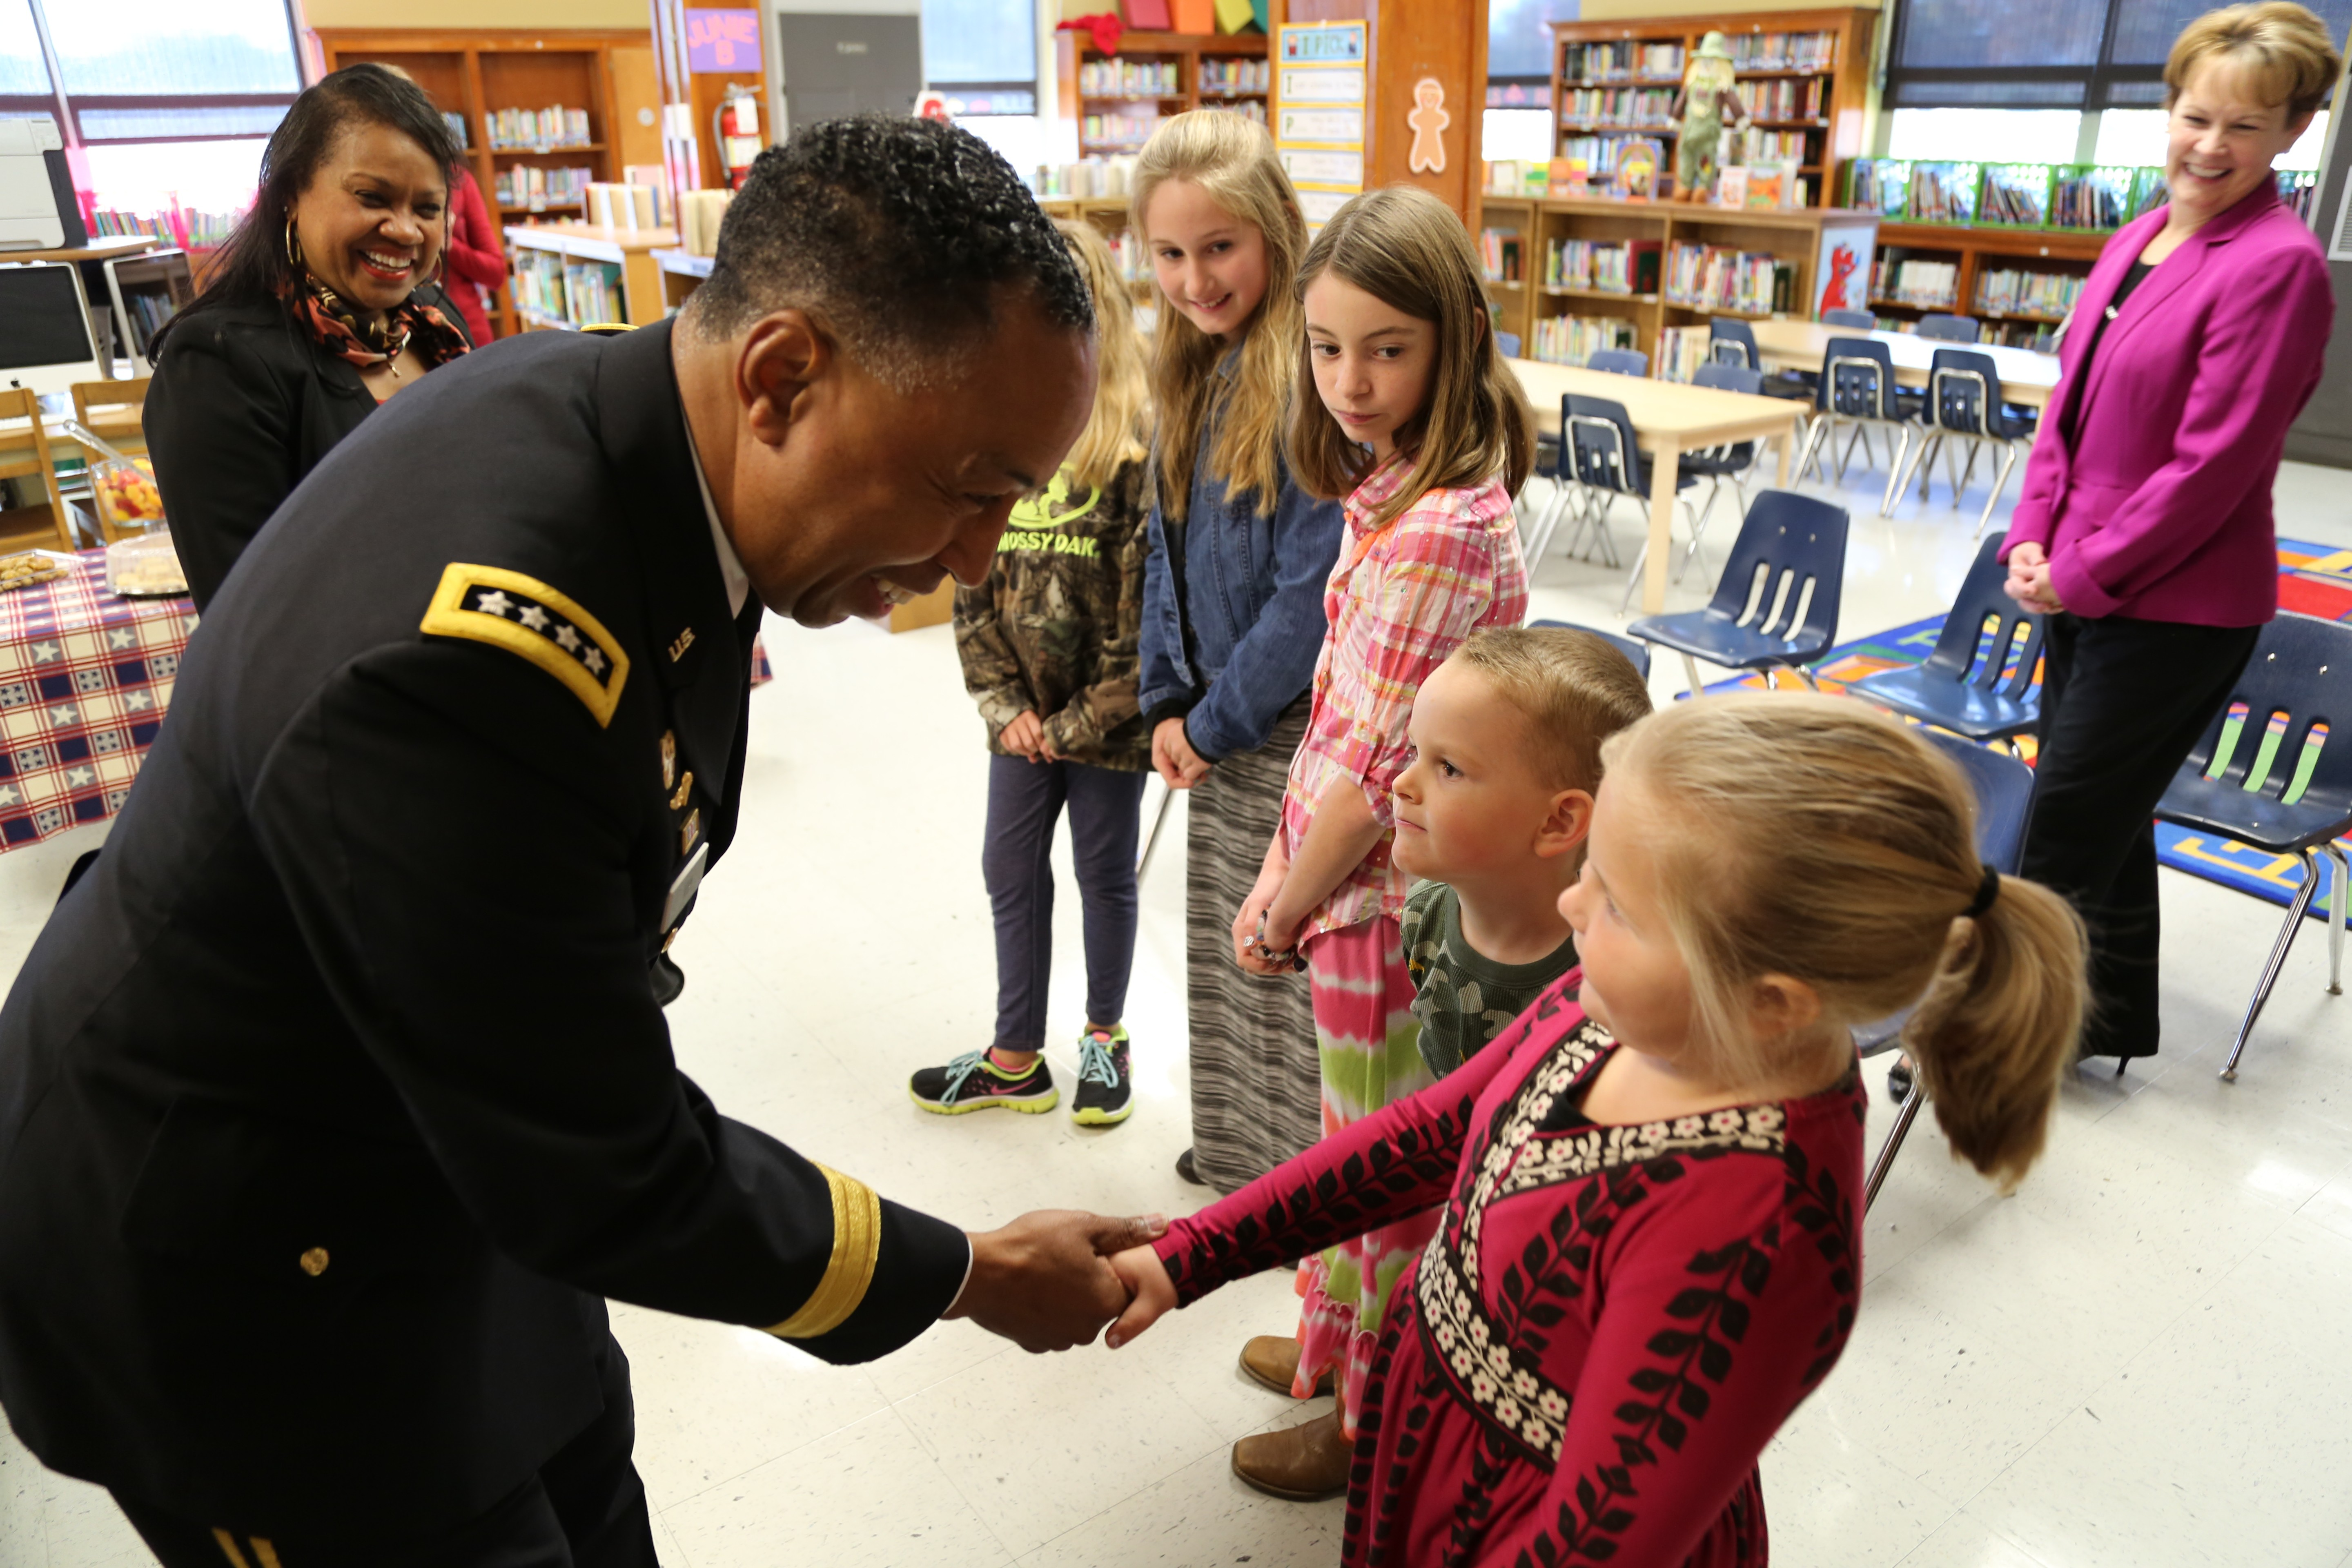 Collinsville (VA) United States  city pictures gallery : ... home, encourages kids to dream big | Article | The United States Army